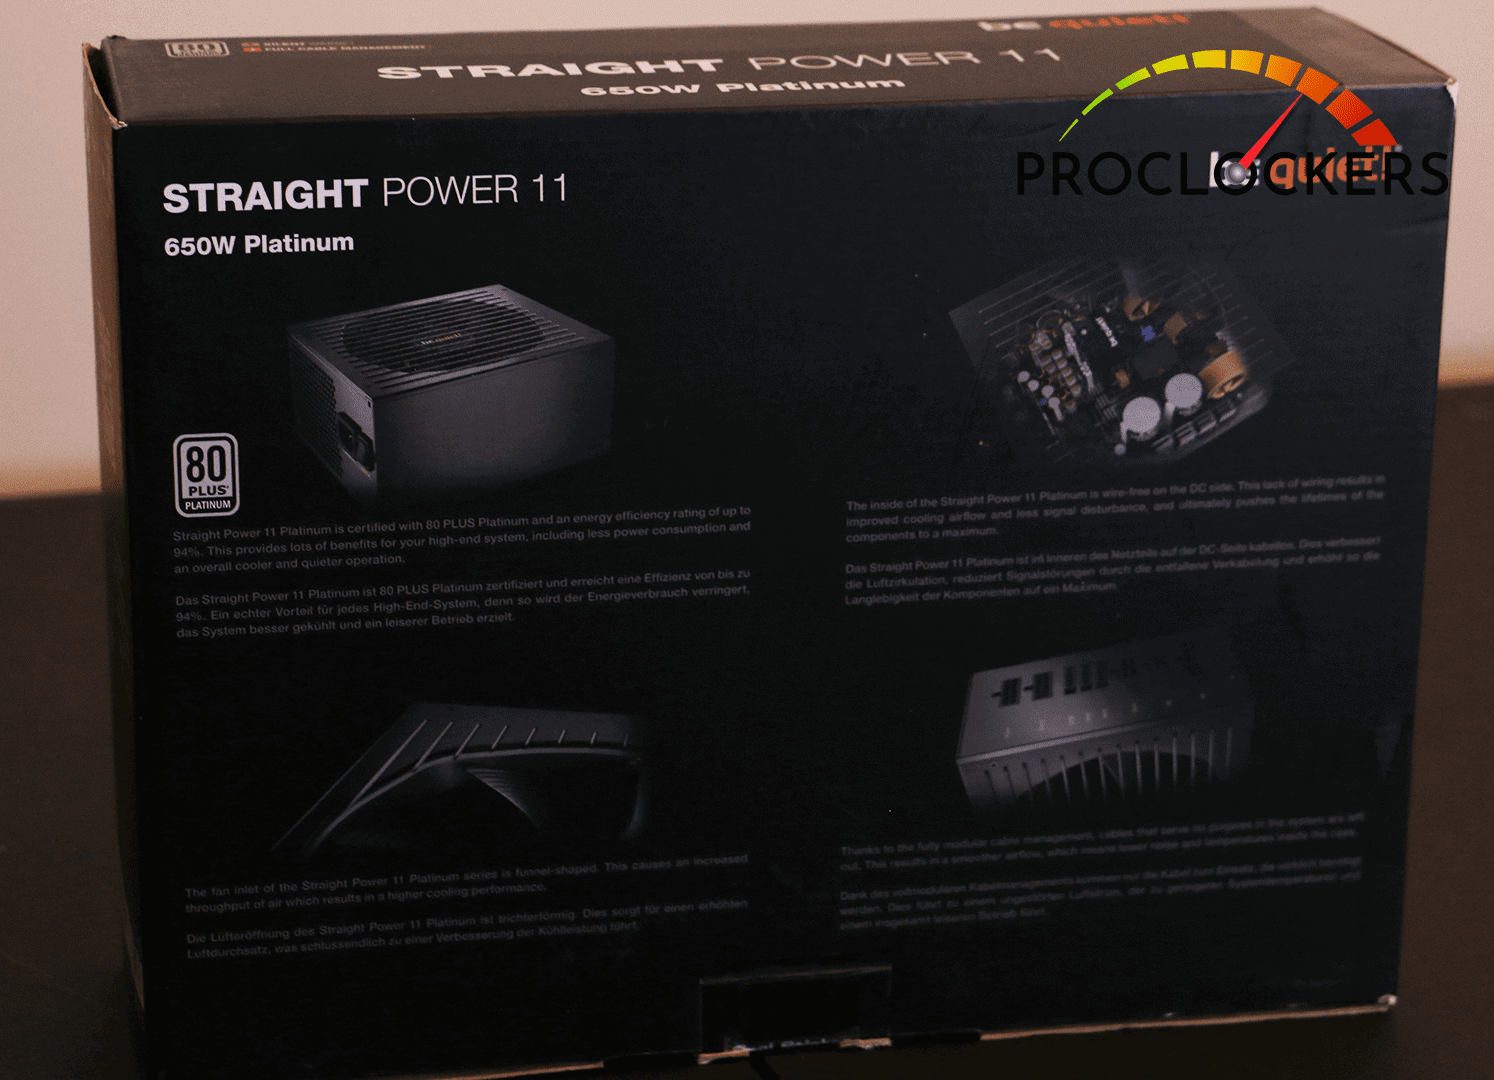 STRAIGHT POWER 11 PACKED BACK OF BOX SHOWING SPECS